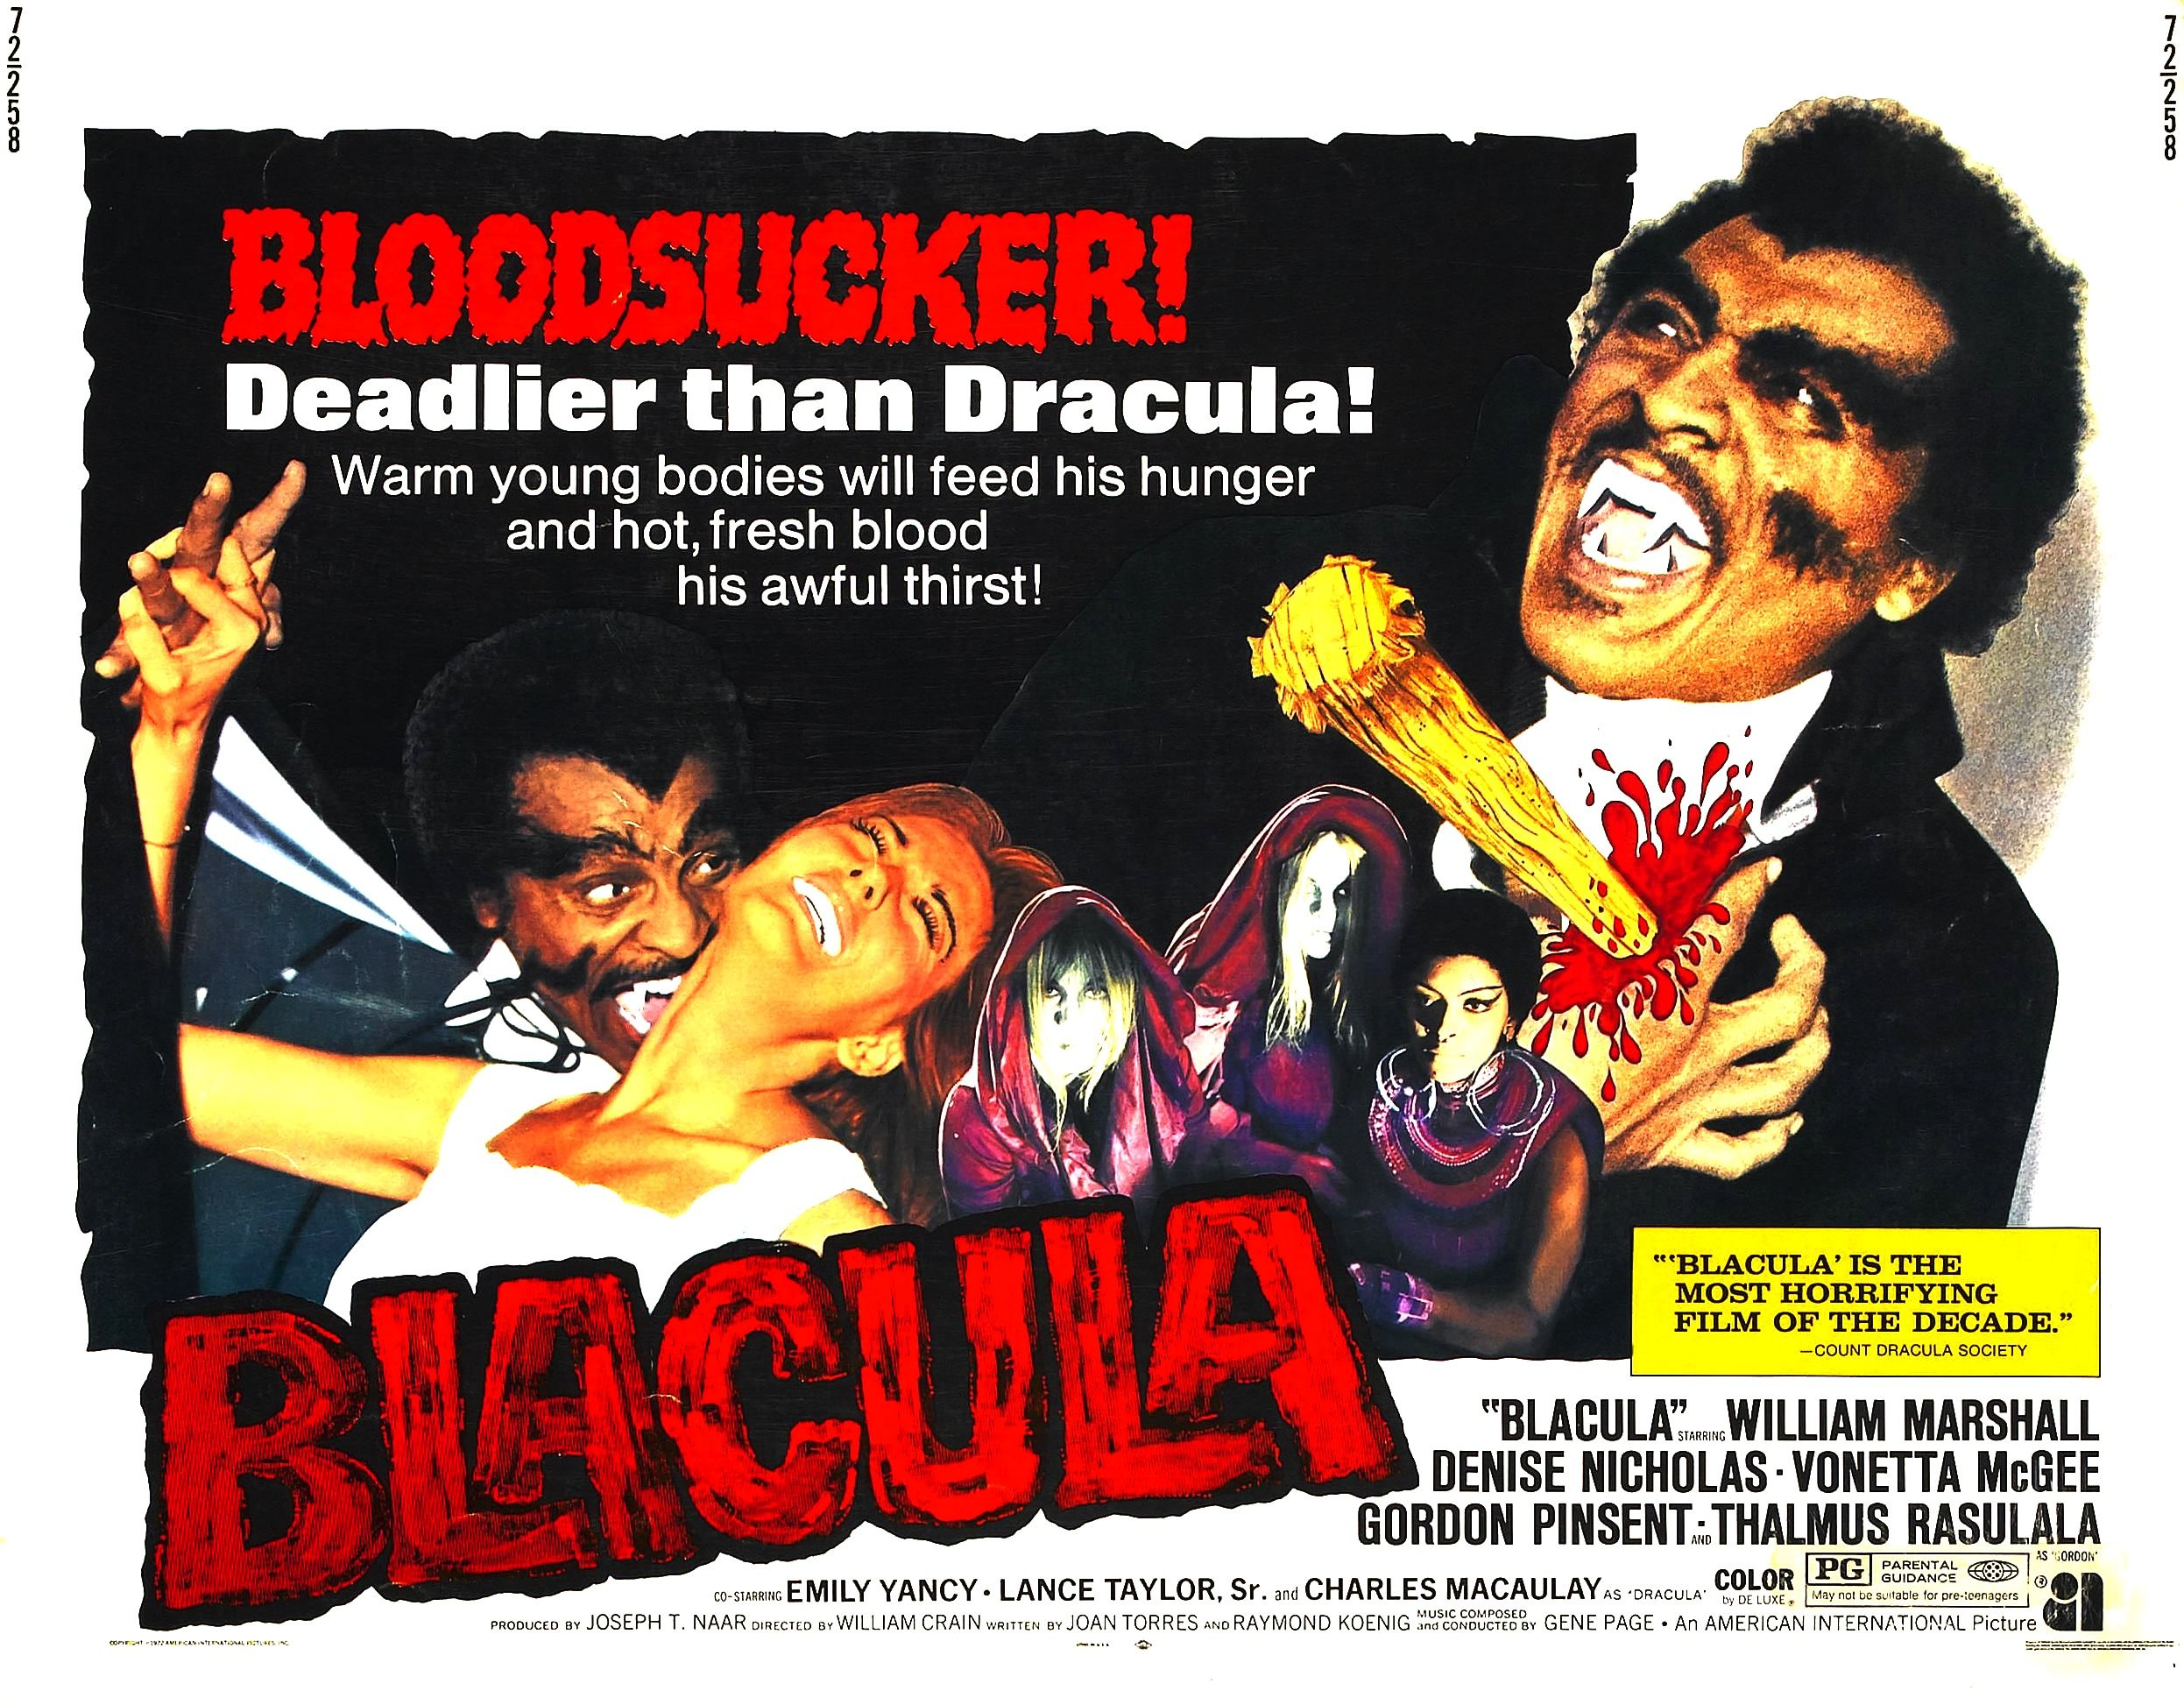 Blacula bites the dust in 1972 Matinee in 2019 Movie posters 2493x1946